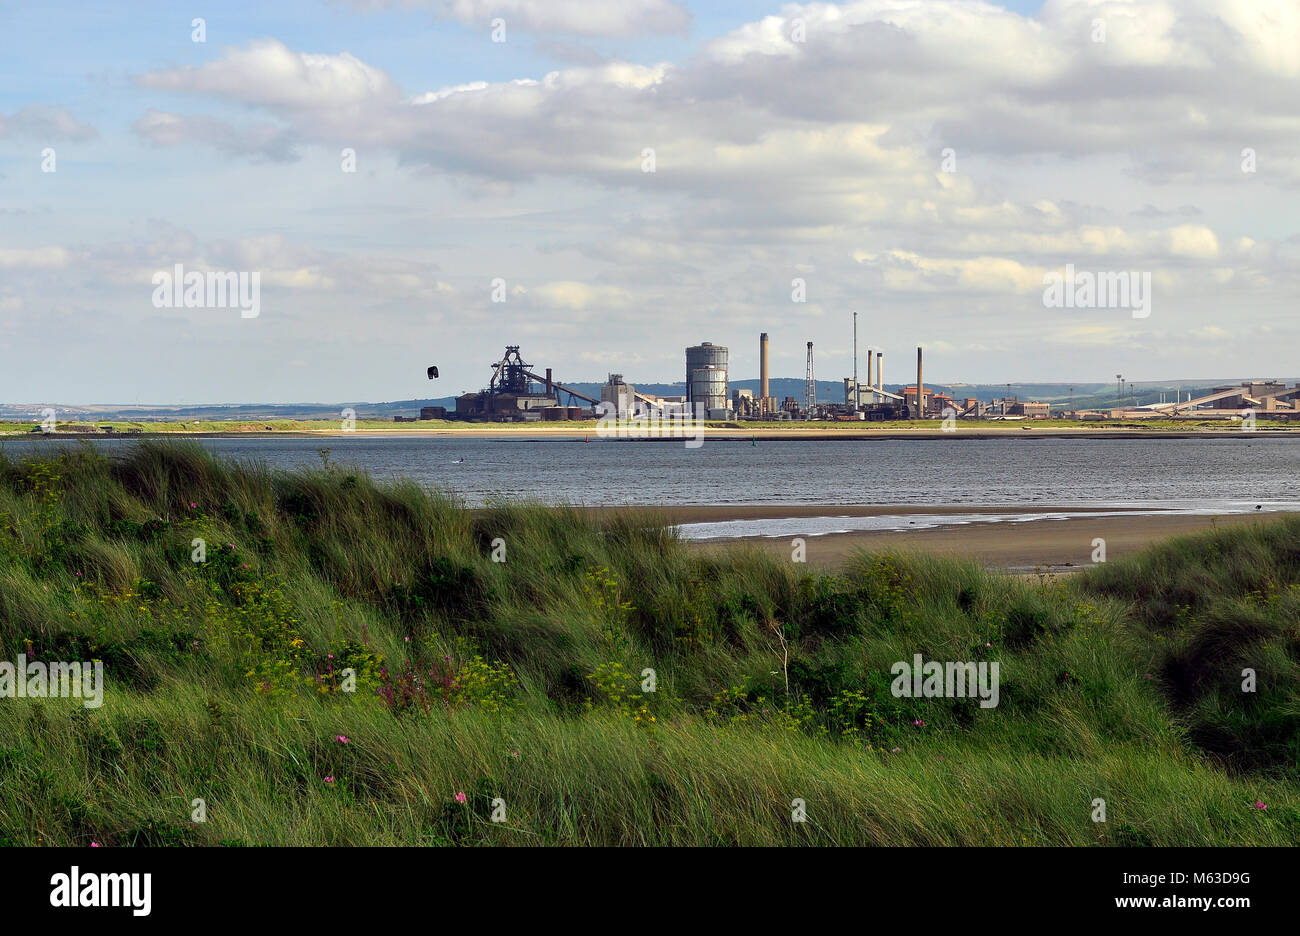 Steelworks at Redcar - Stock Image